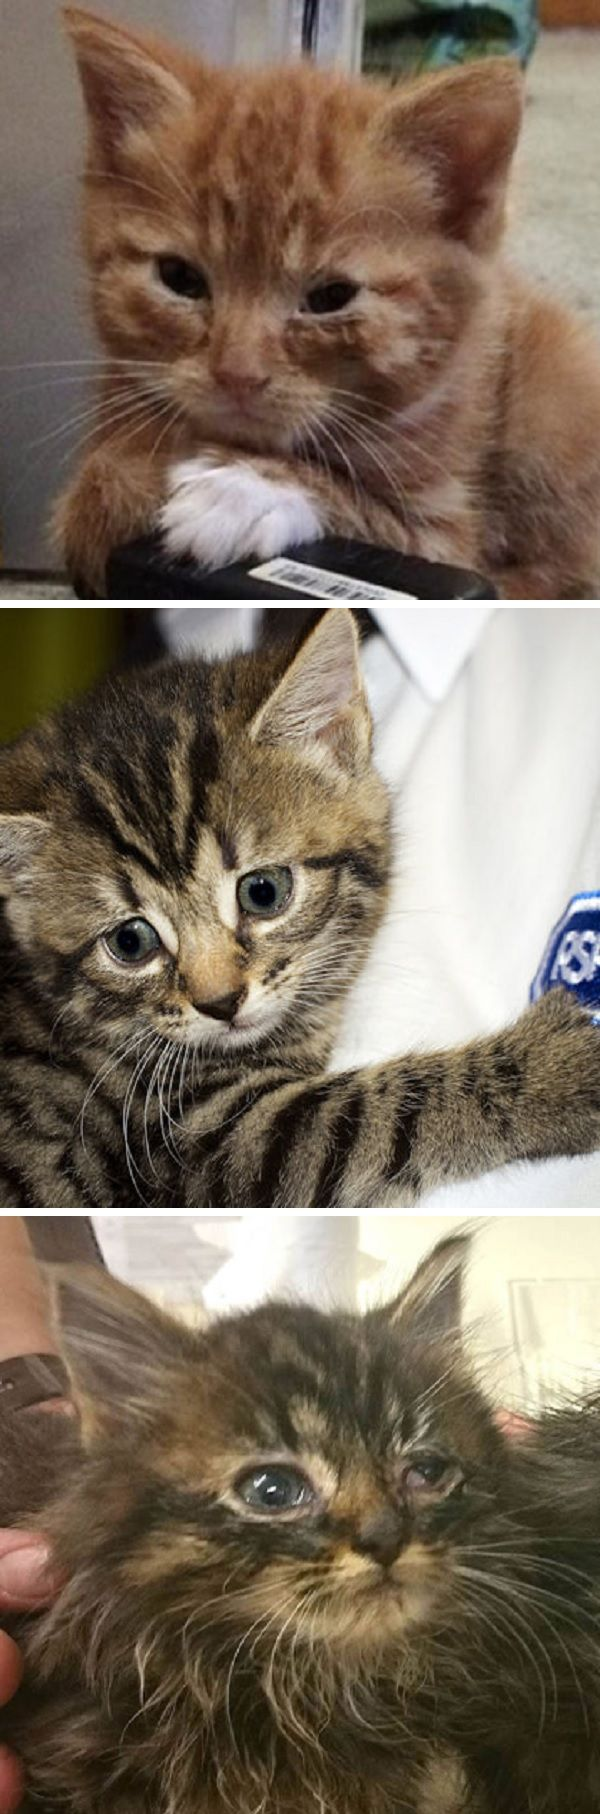 Rspca Completely Overrun With Abandoned Cats And Kittens Left For Dead By Owners Cats And Kittens Cats Pets